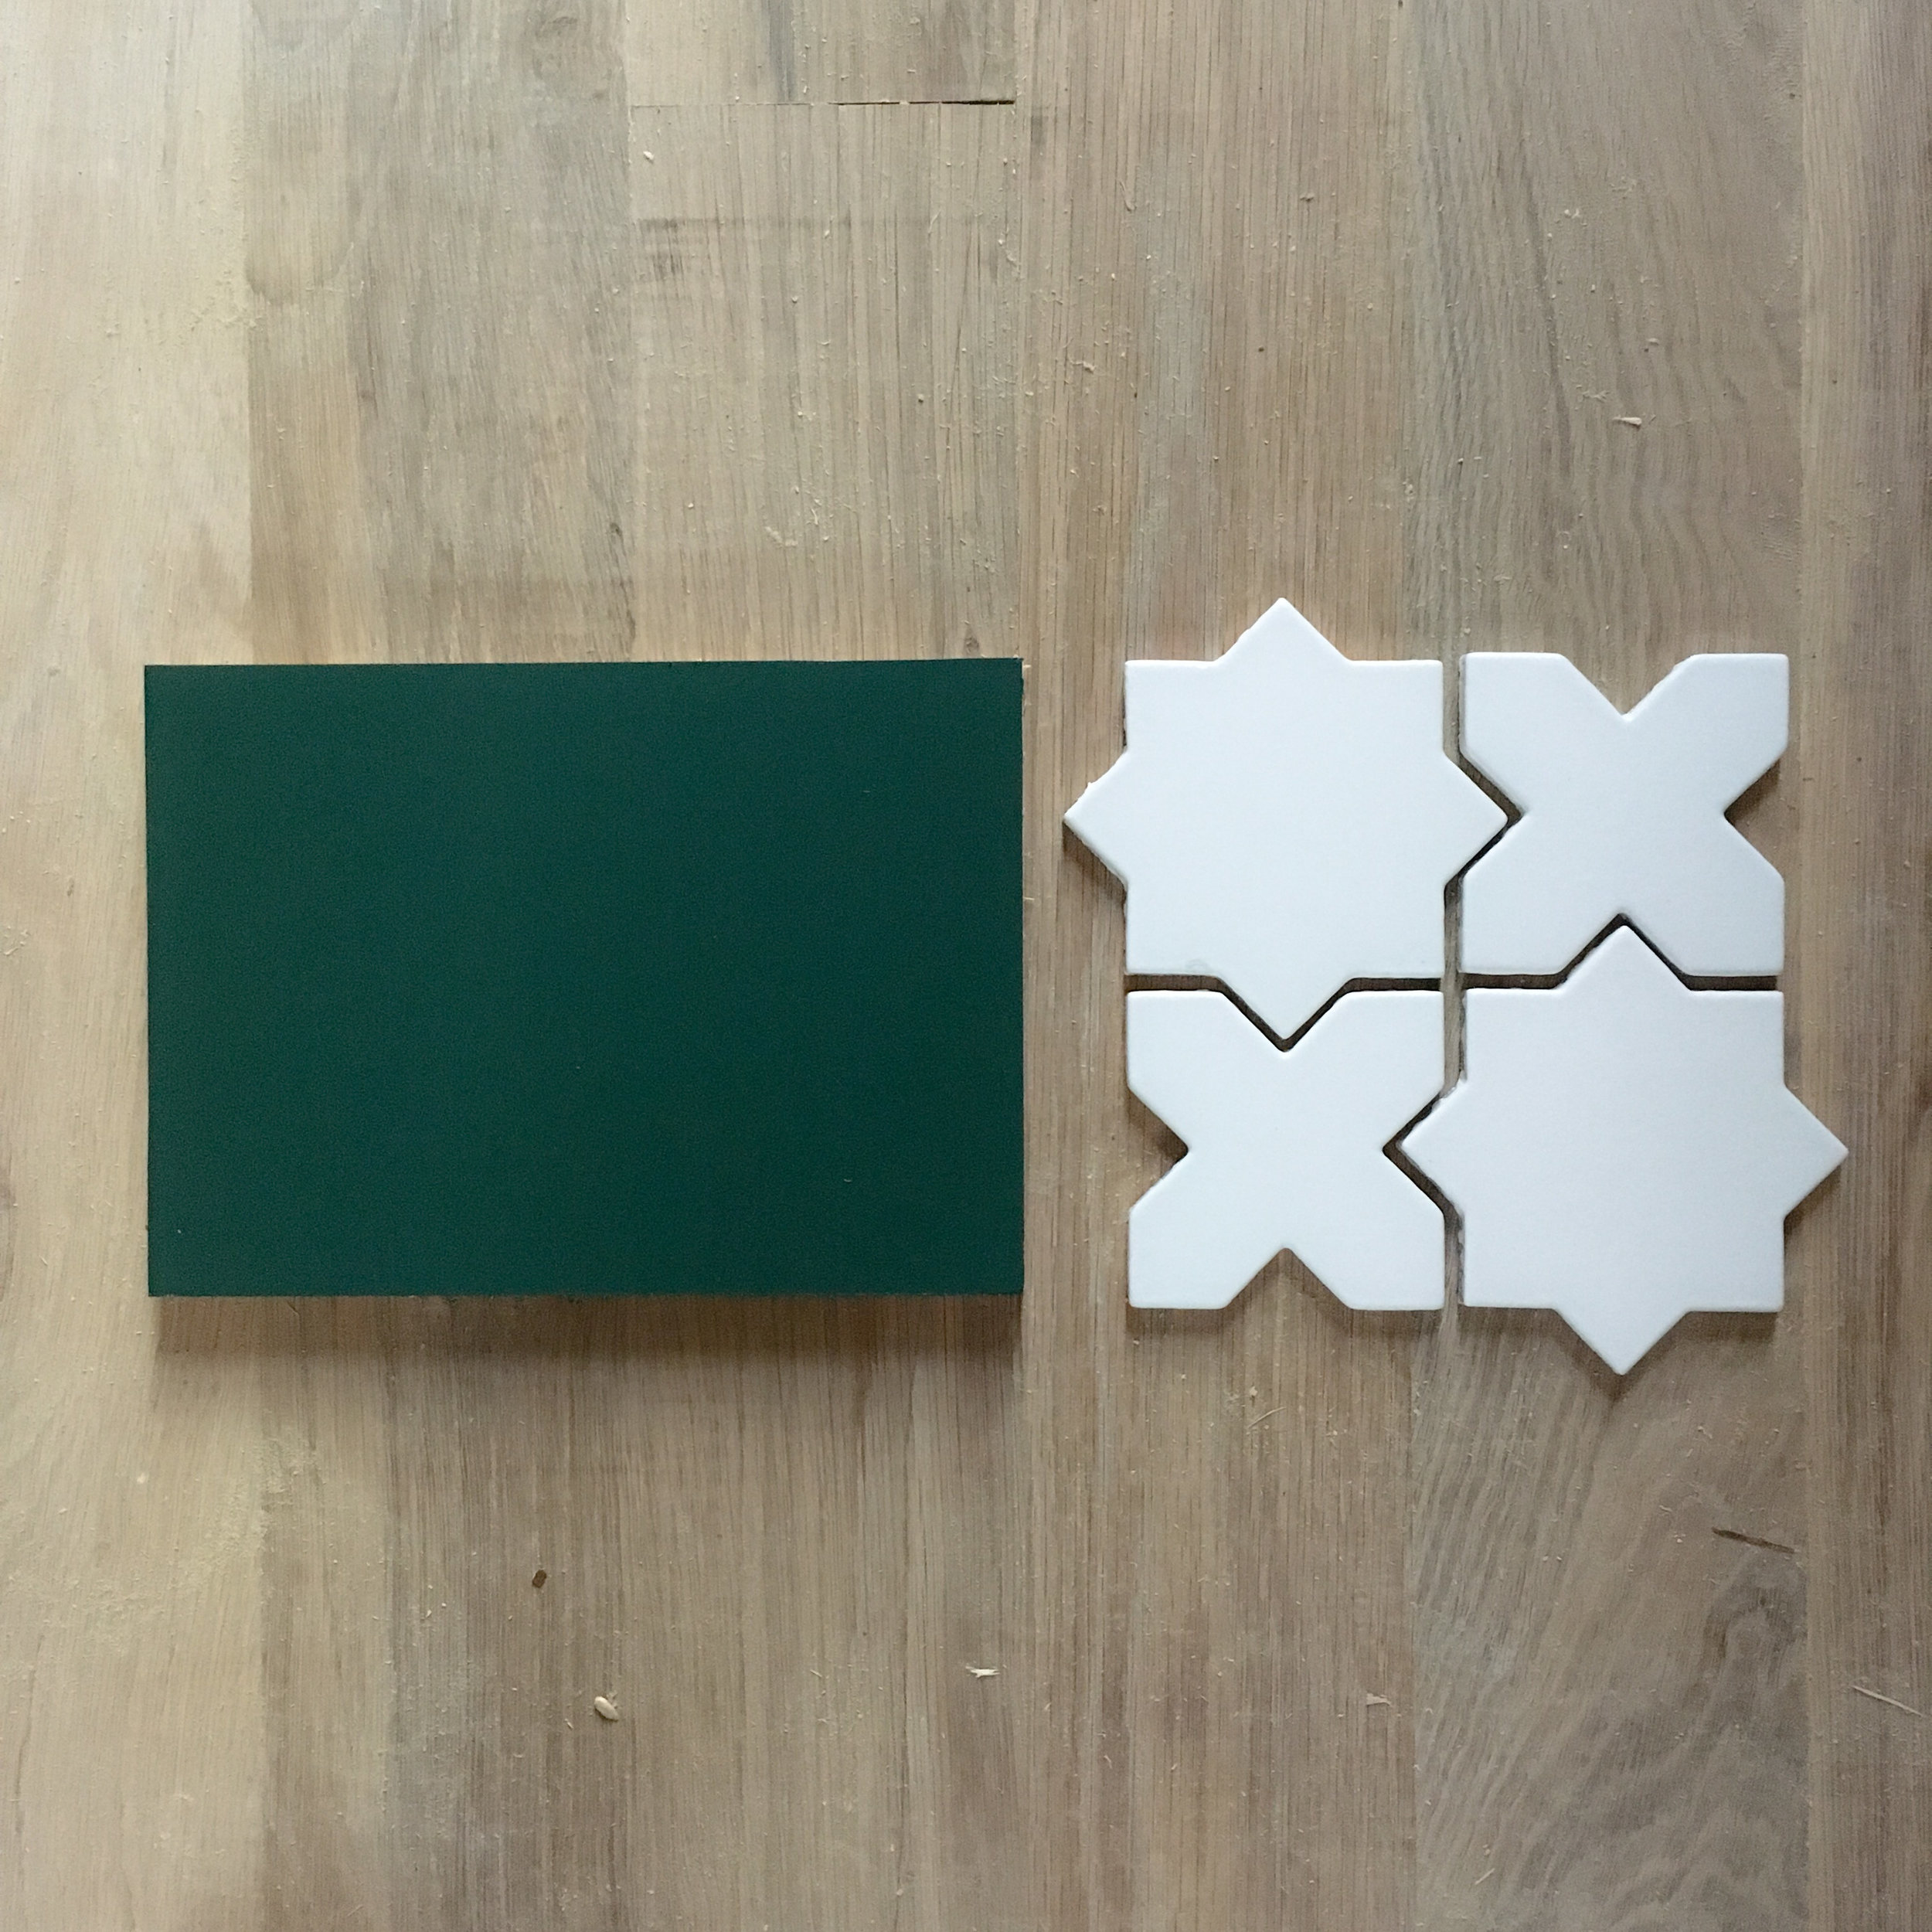 behr equilibrium and fire clay calcite tile.JPG